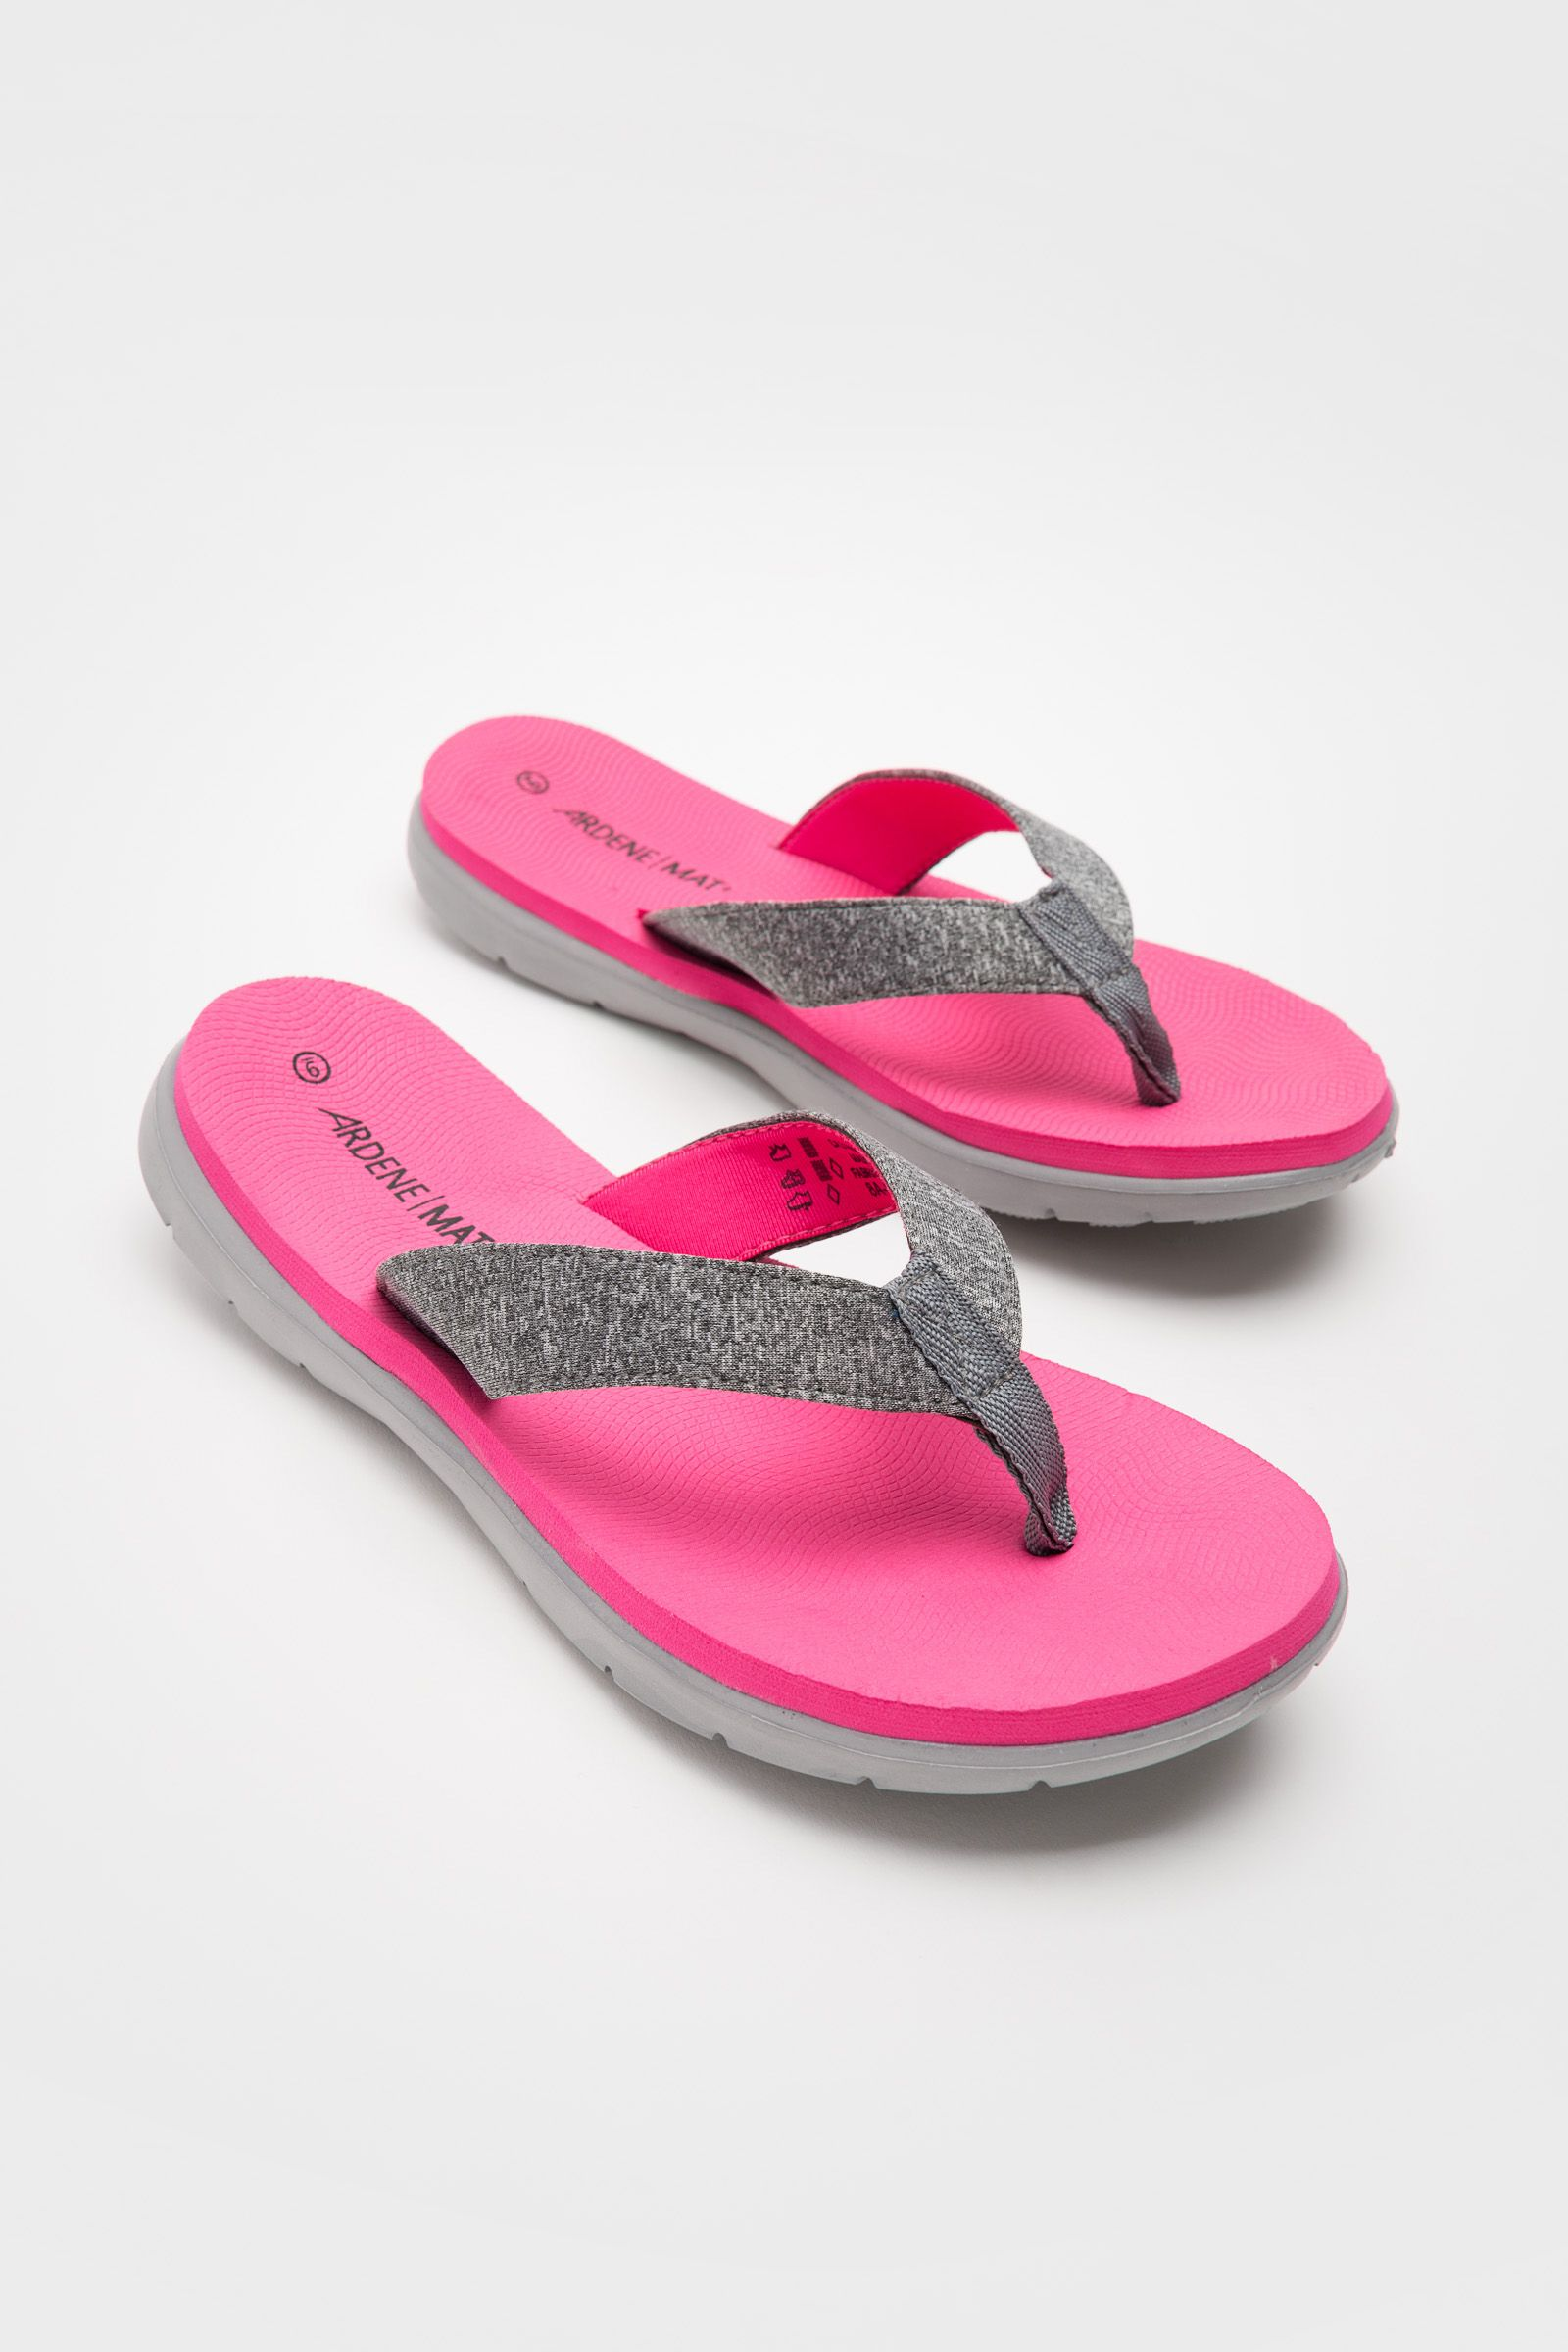 2555879a7 Classic foam flip-flop sandals. MAT+ insole that gives you the comfort of a